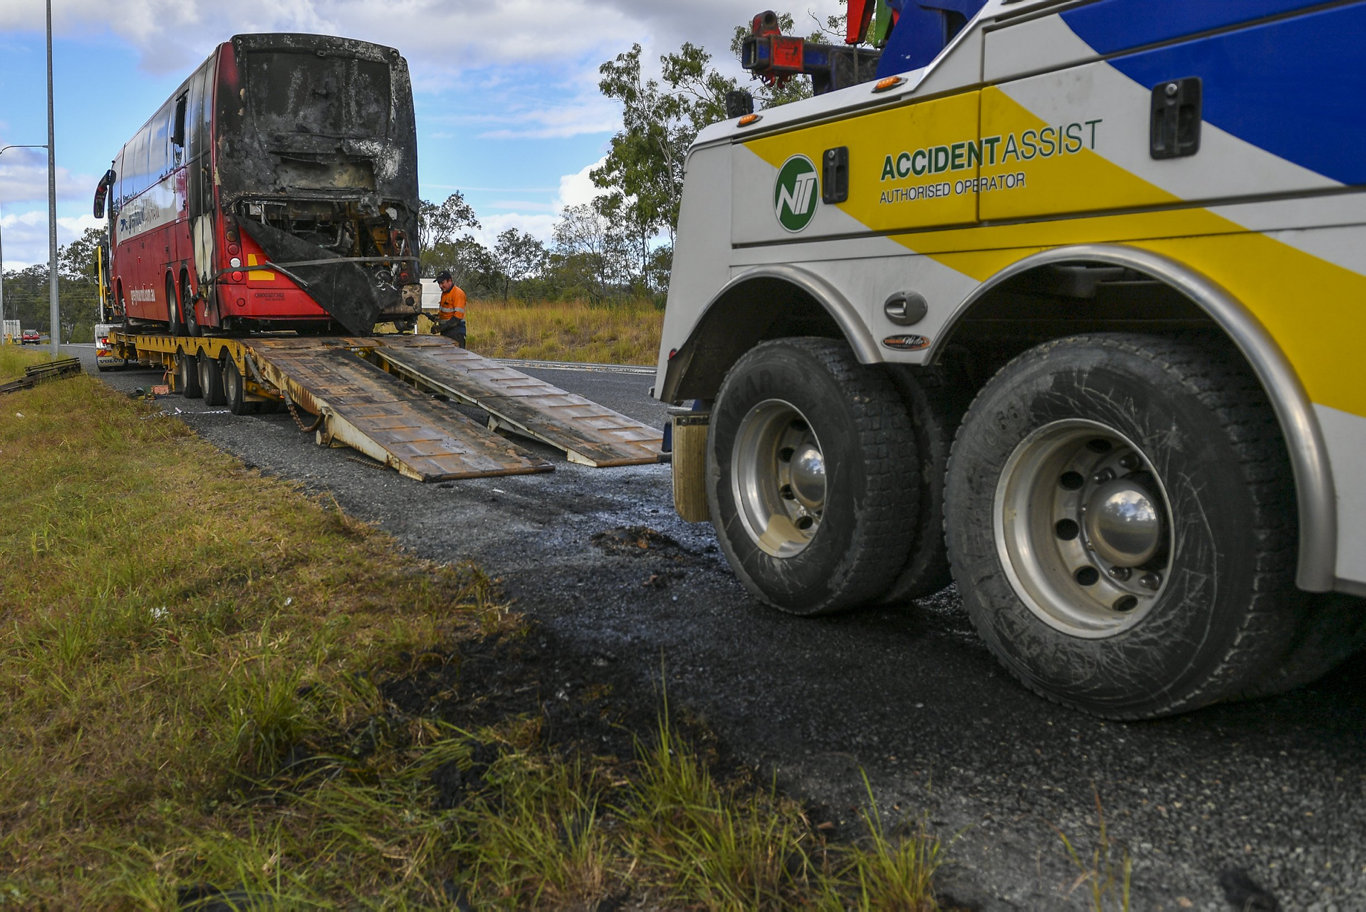 Photos of a Greyhound Australia bus on the Bruce Highway have highlighted the lucky escape of 16 passengers near Calliope crossroads in the early hours of Saturday morning.